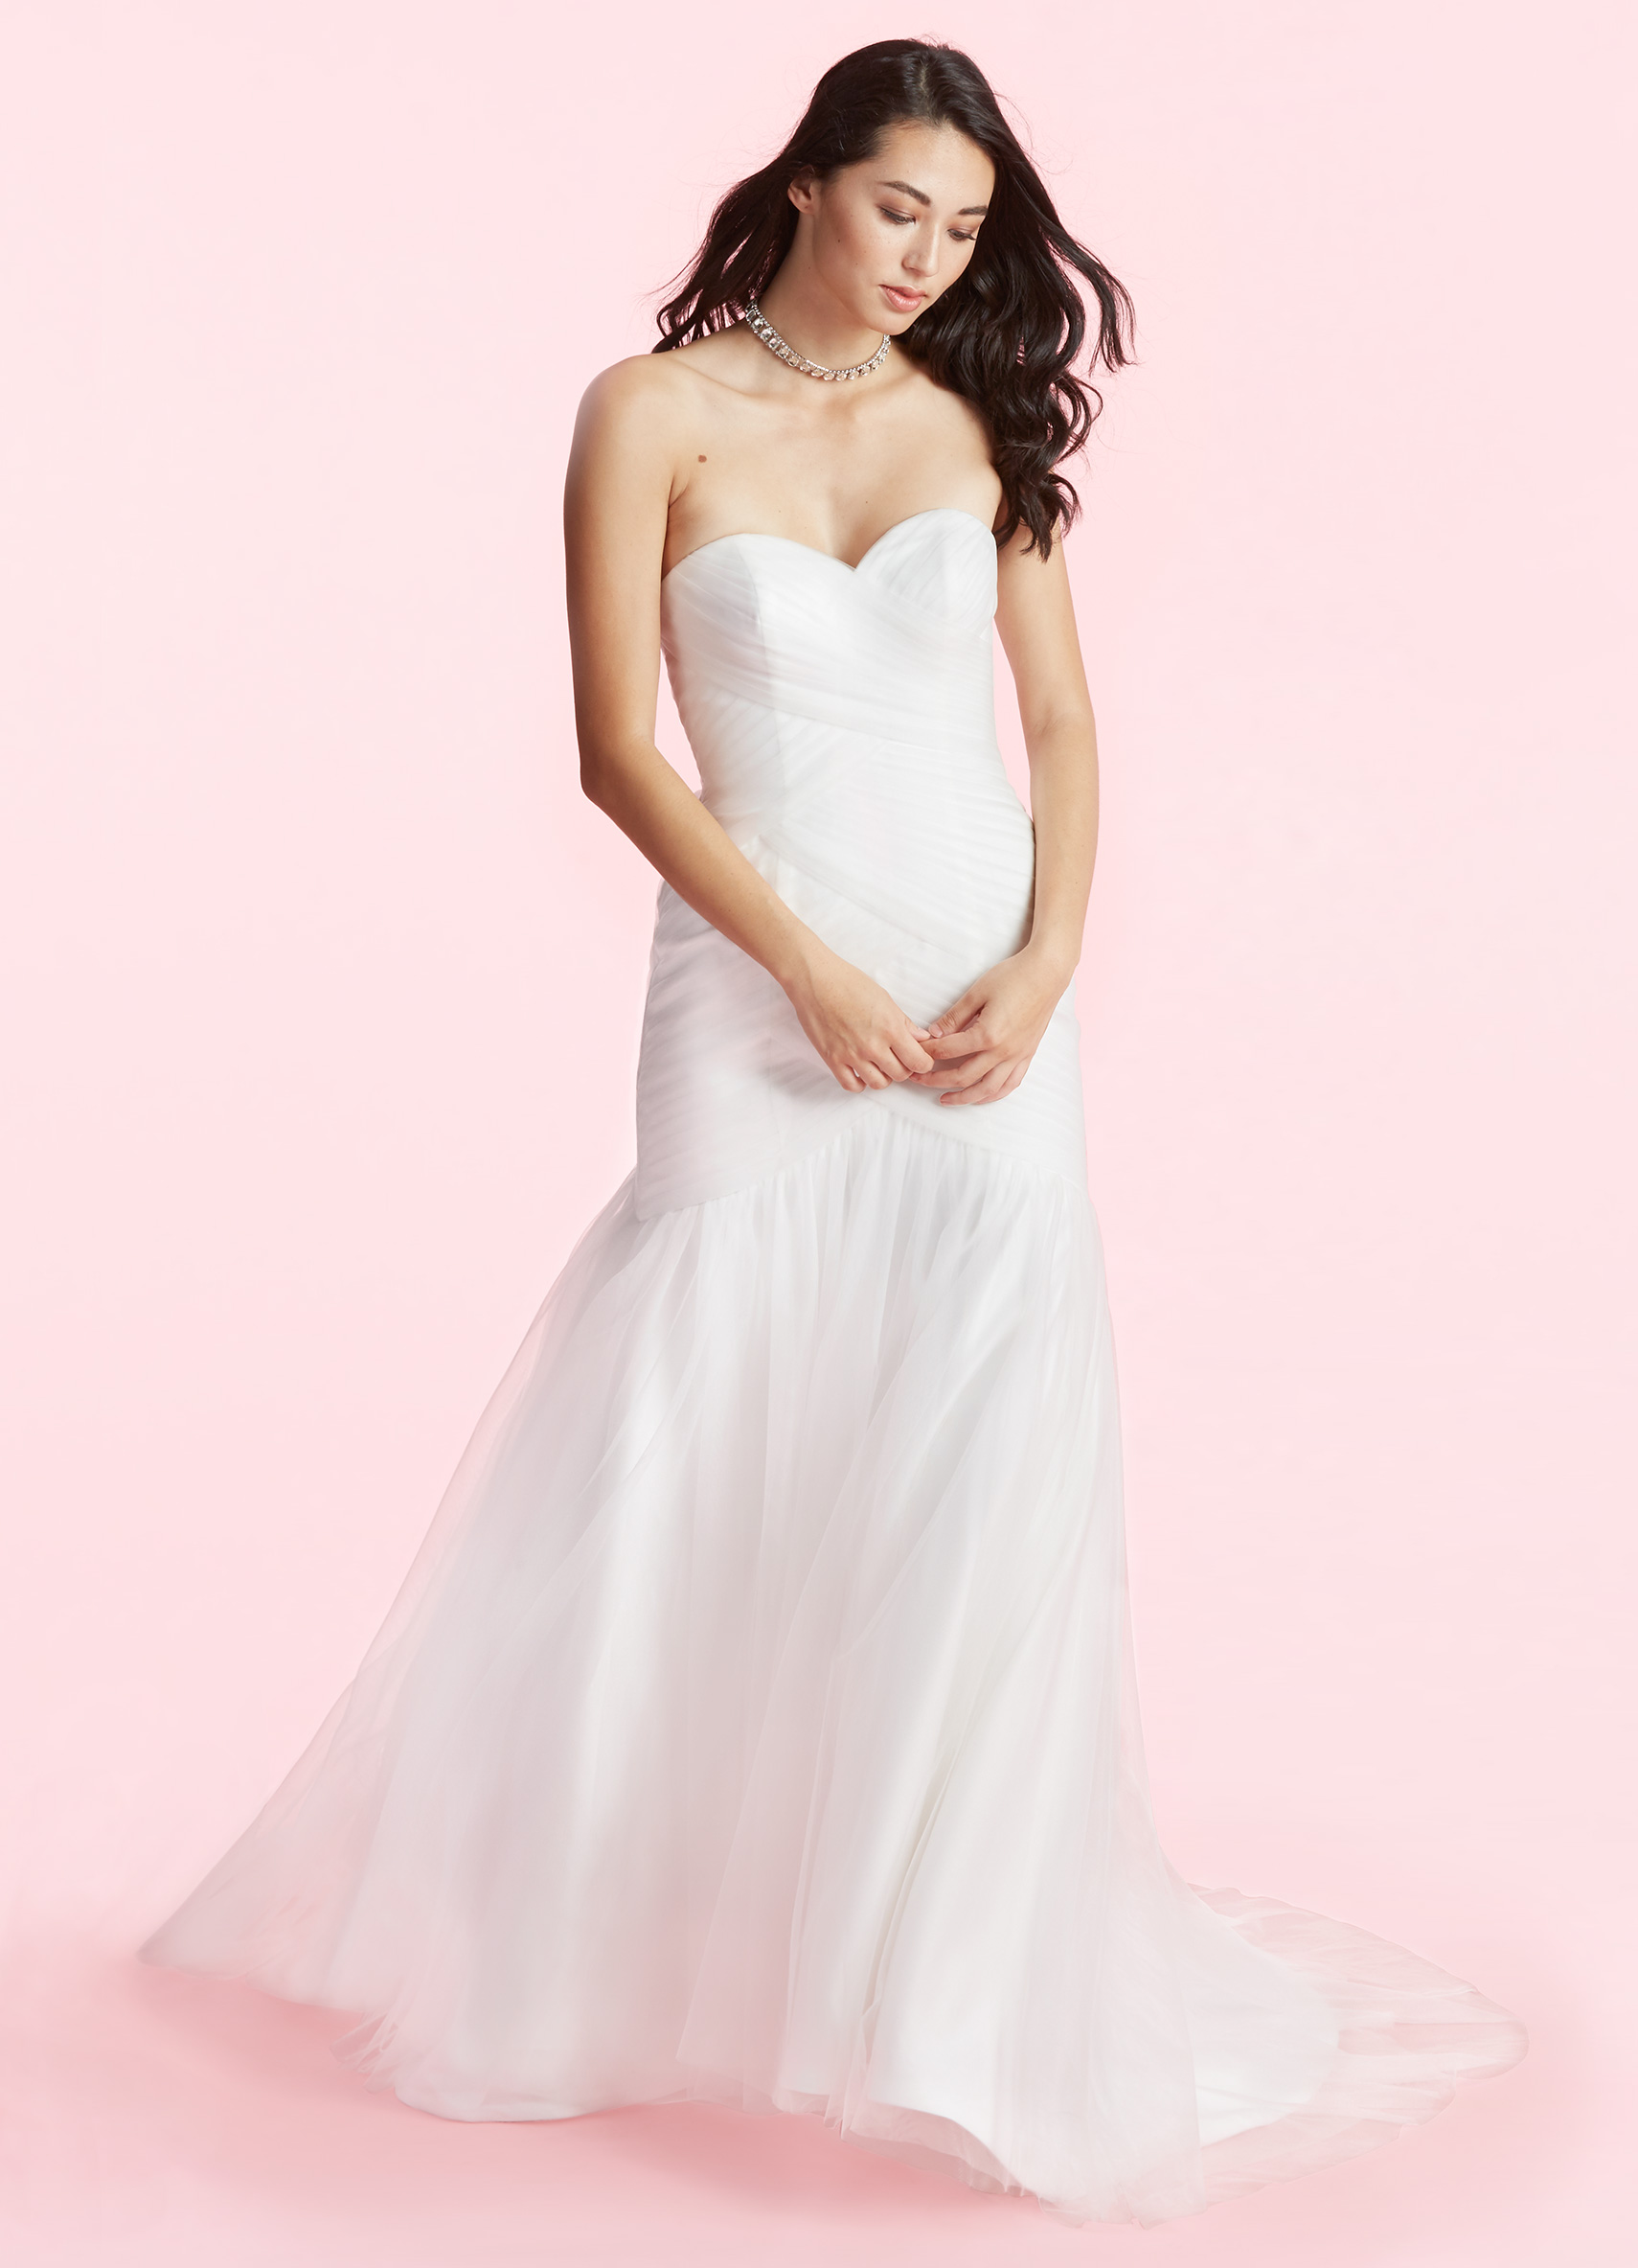 62c40bd3f441c ... Misty gown with an ultra-flattering sweetheart neckline. The strapless  design features a pleated bodice and a corset back that will define your  figure, ...